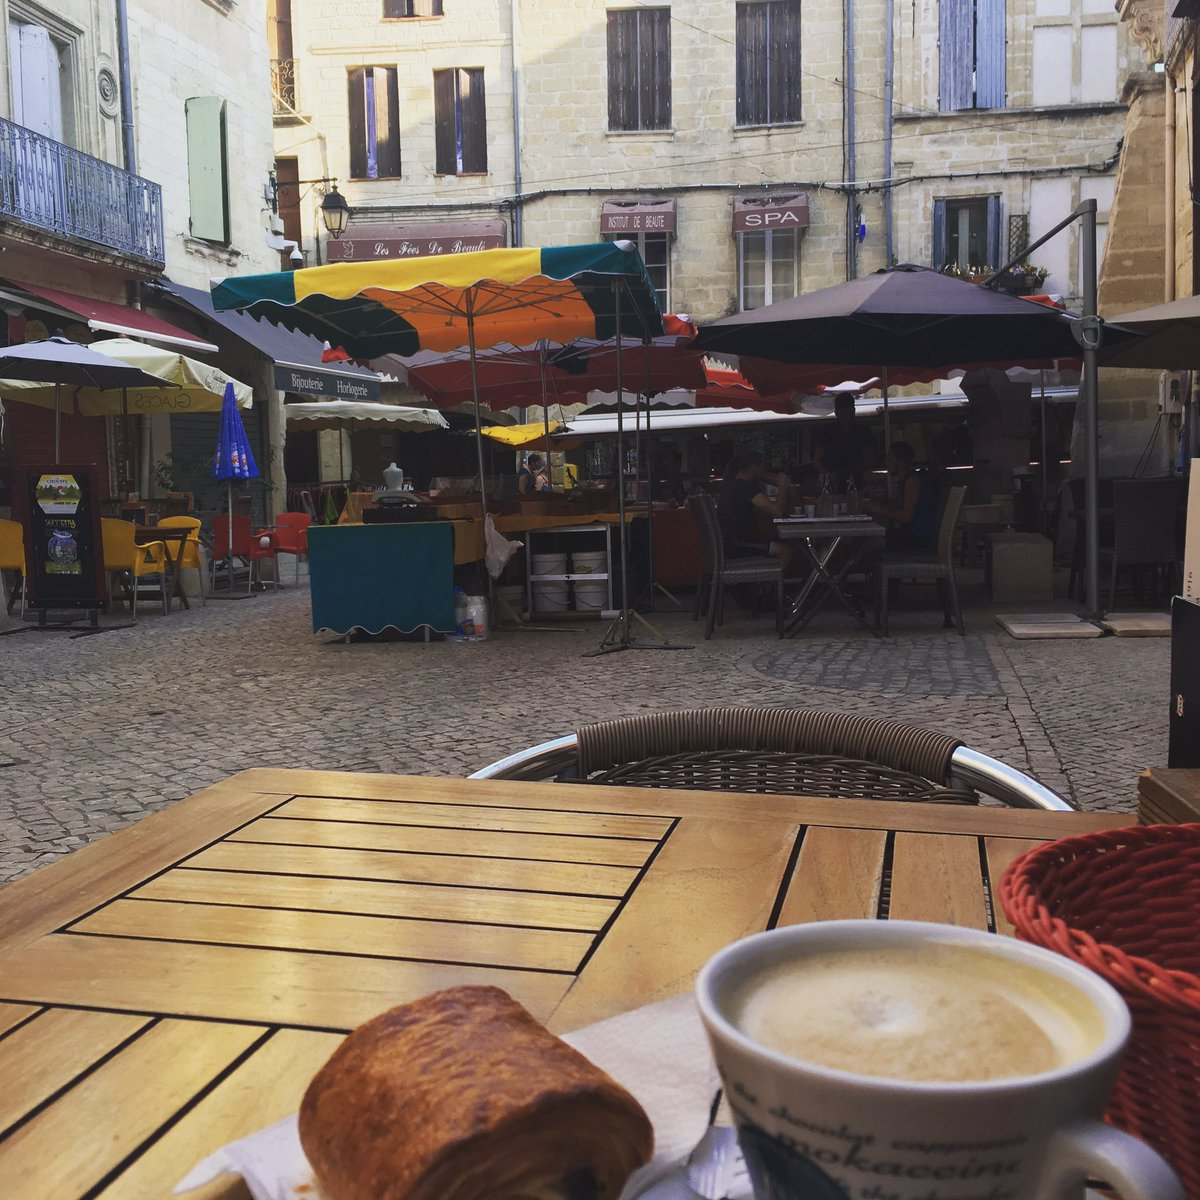 A market place breakfast in pretty Sommières - gorgeous morning already #earlystart #brocante <br>http://pic.twitter.com/6ByG5YHKF4